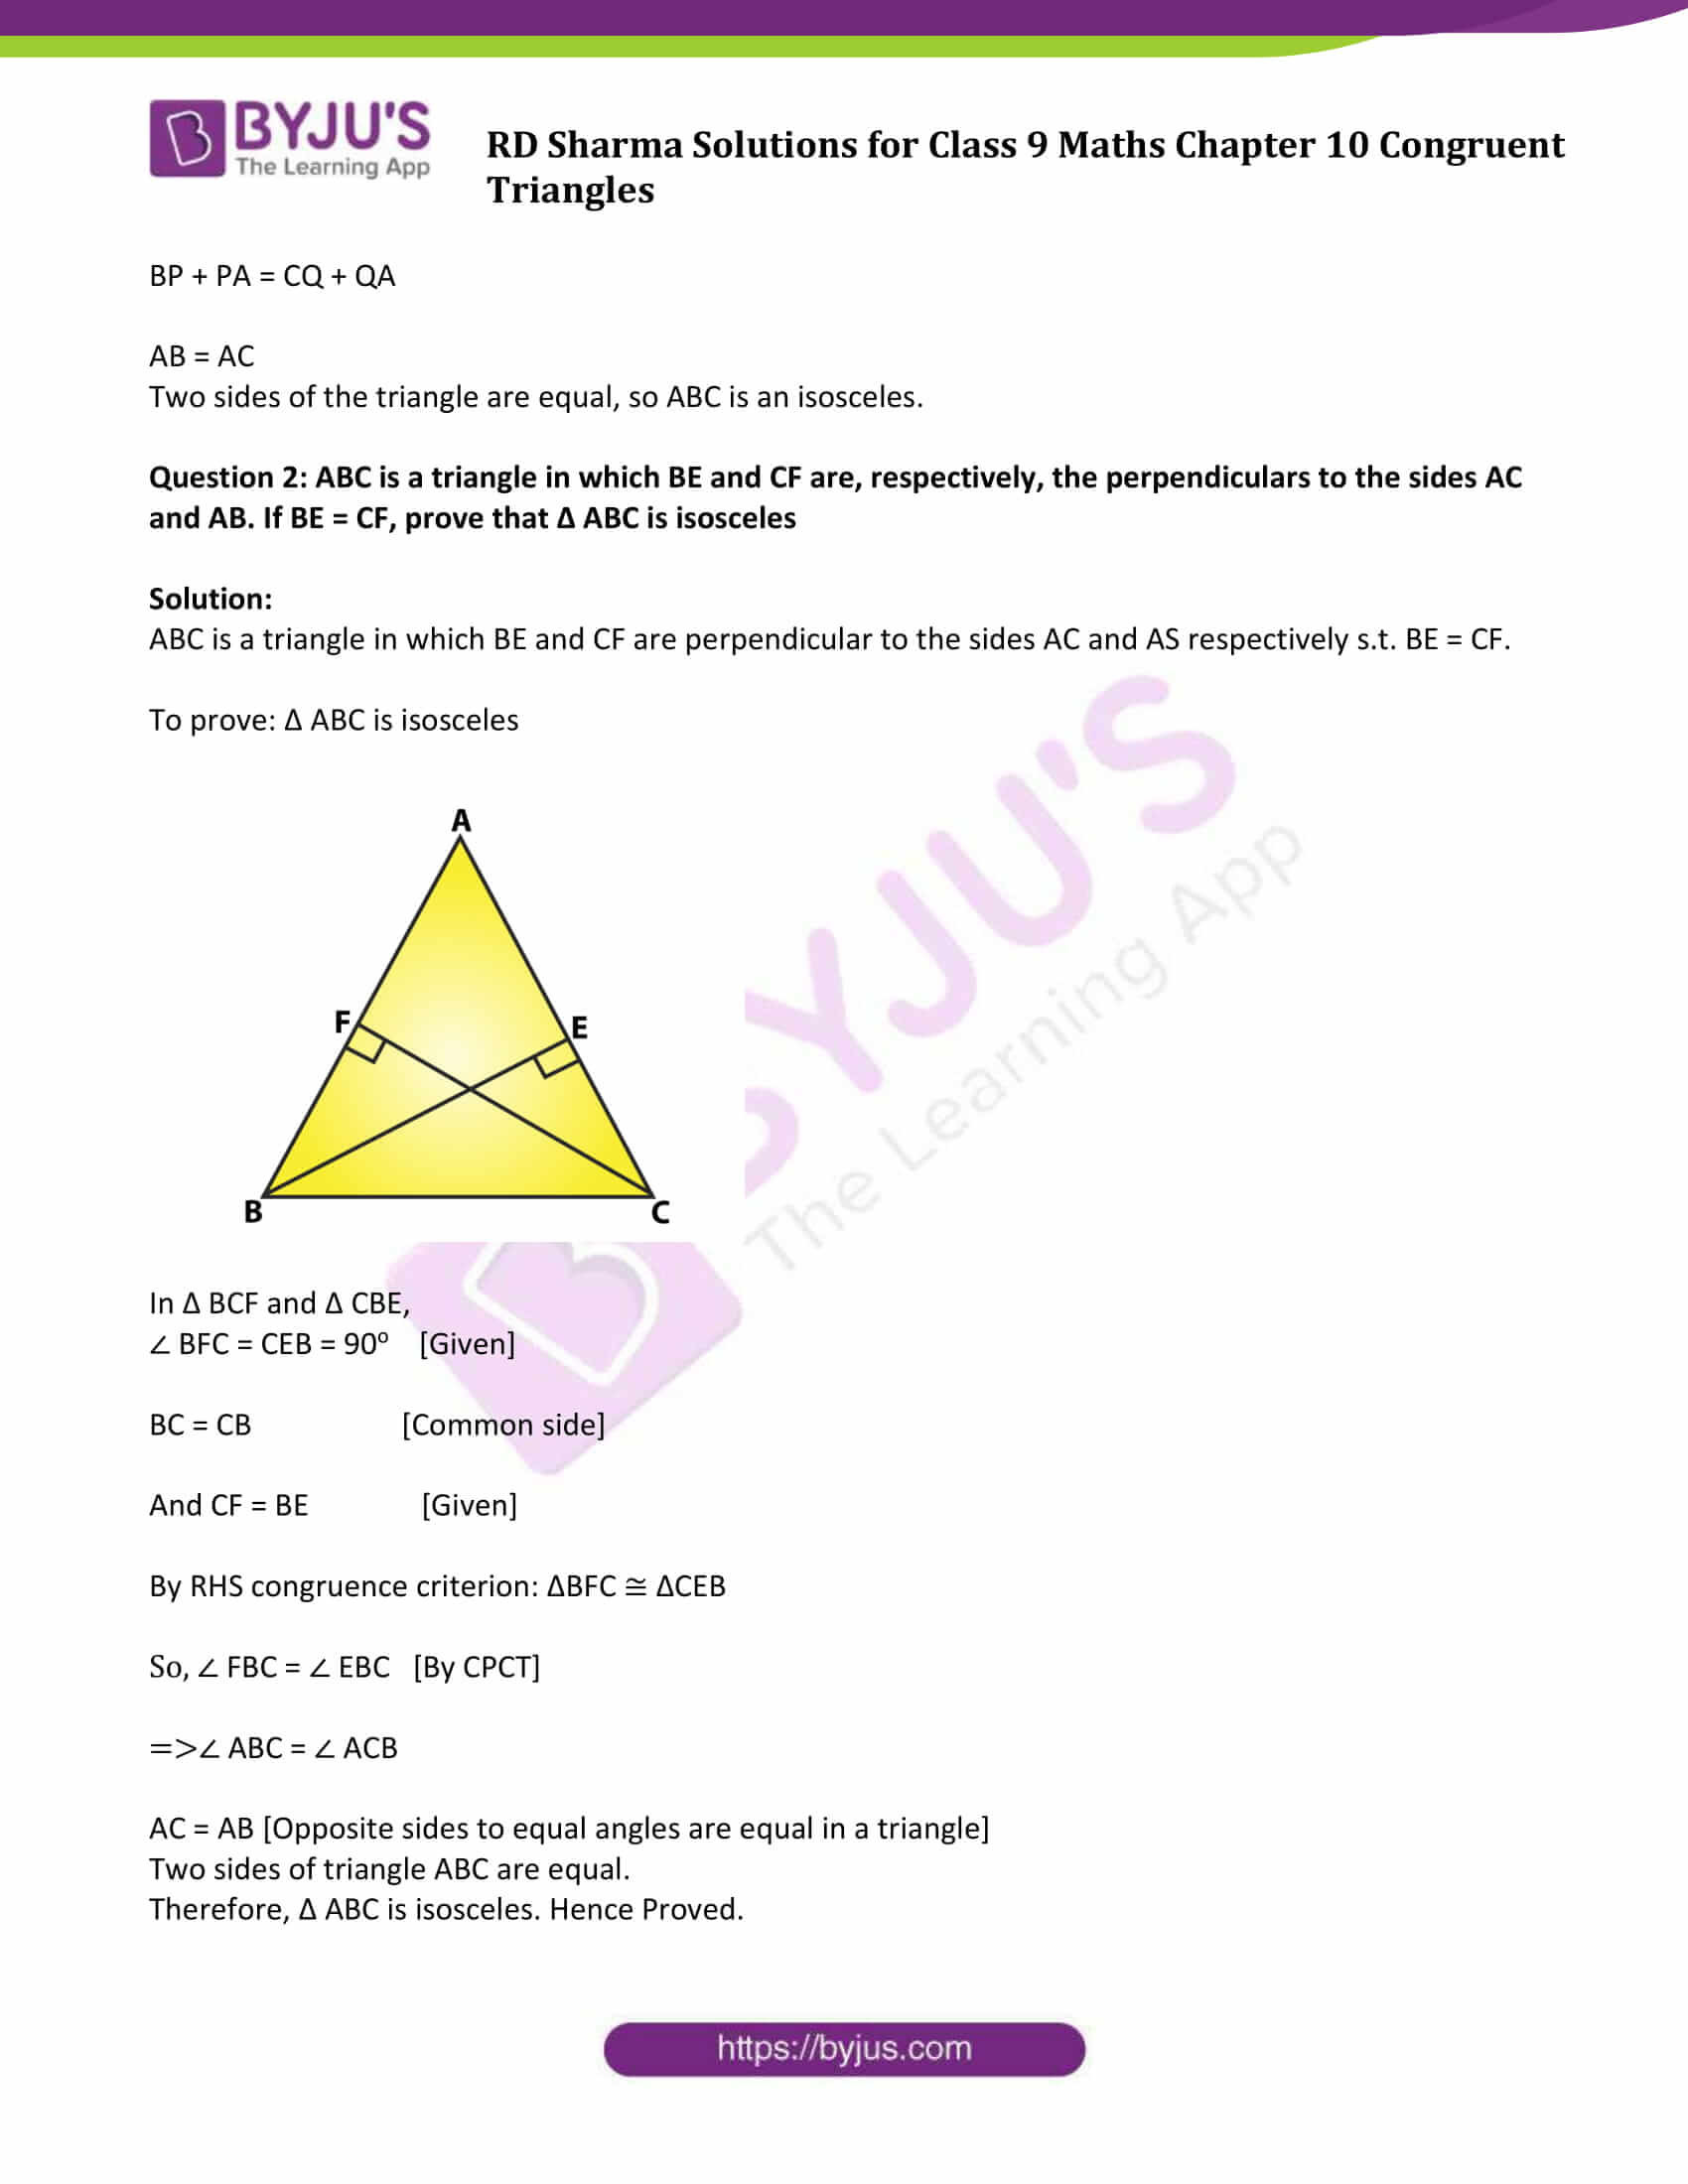 Congruent Triangles Worksheet Answer Key Rd Sharma solutions Class 9 Chapter 10 Congruent Triangles